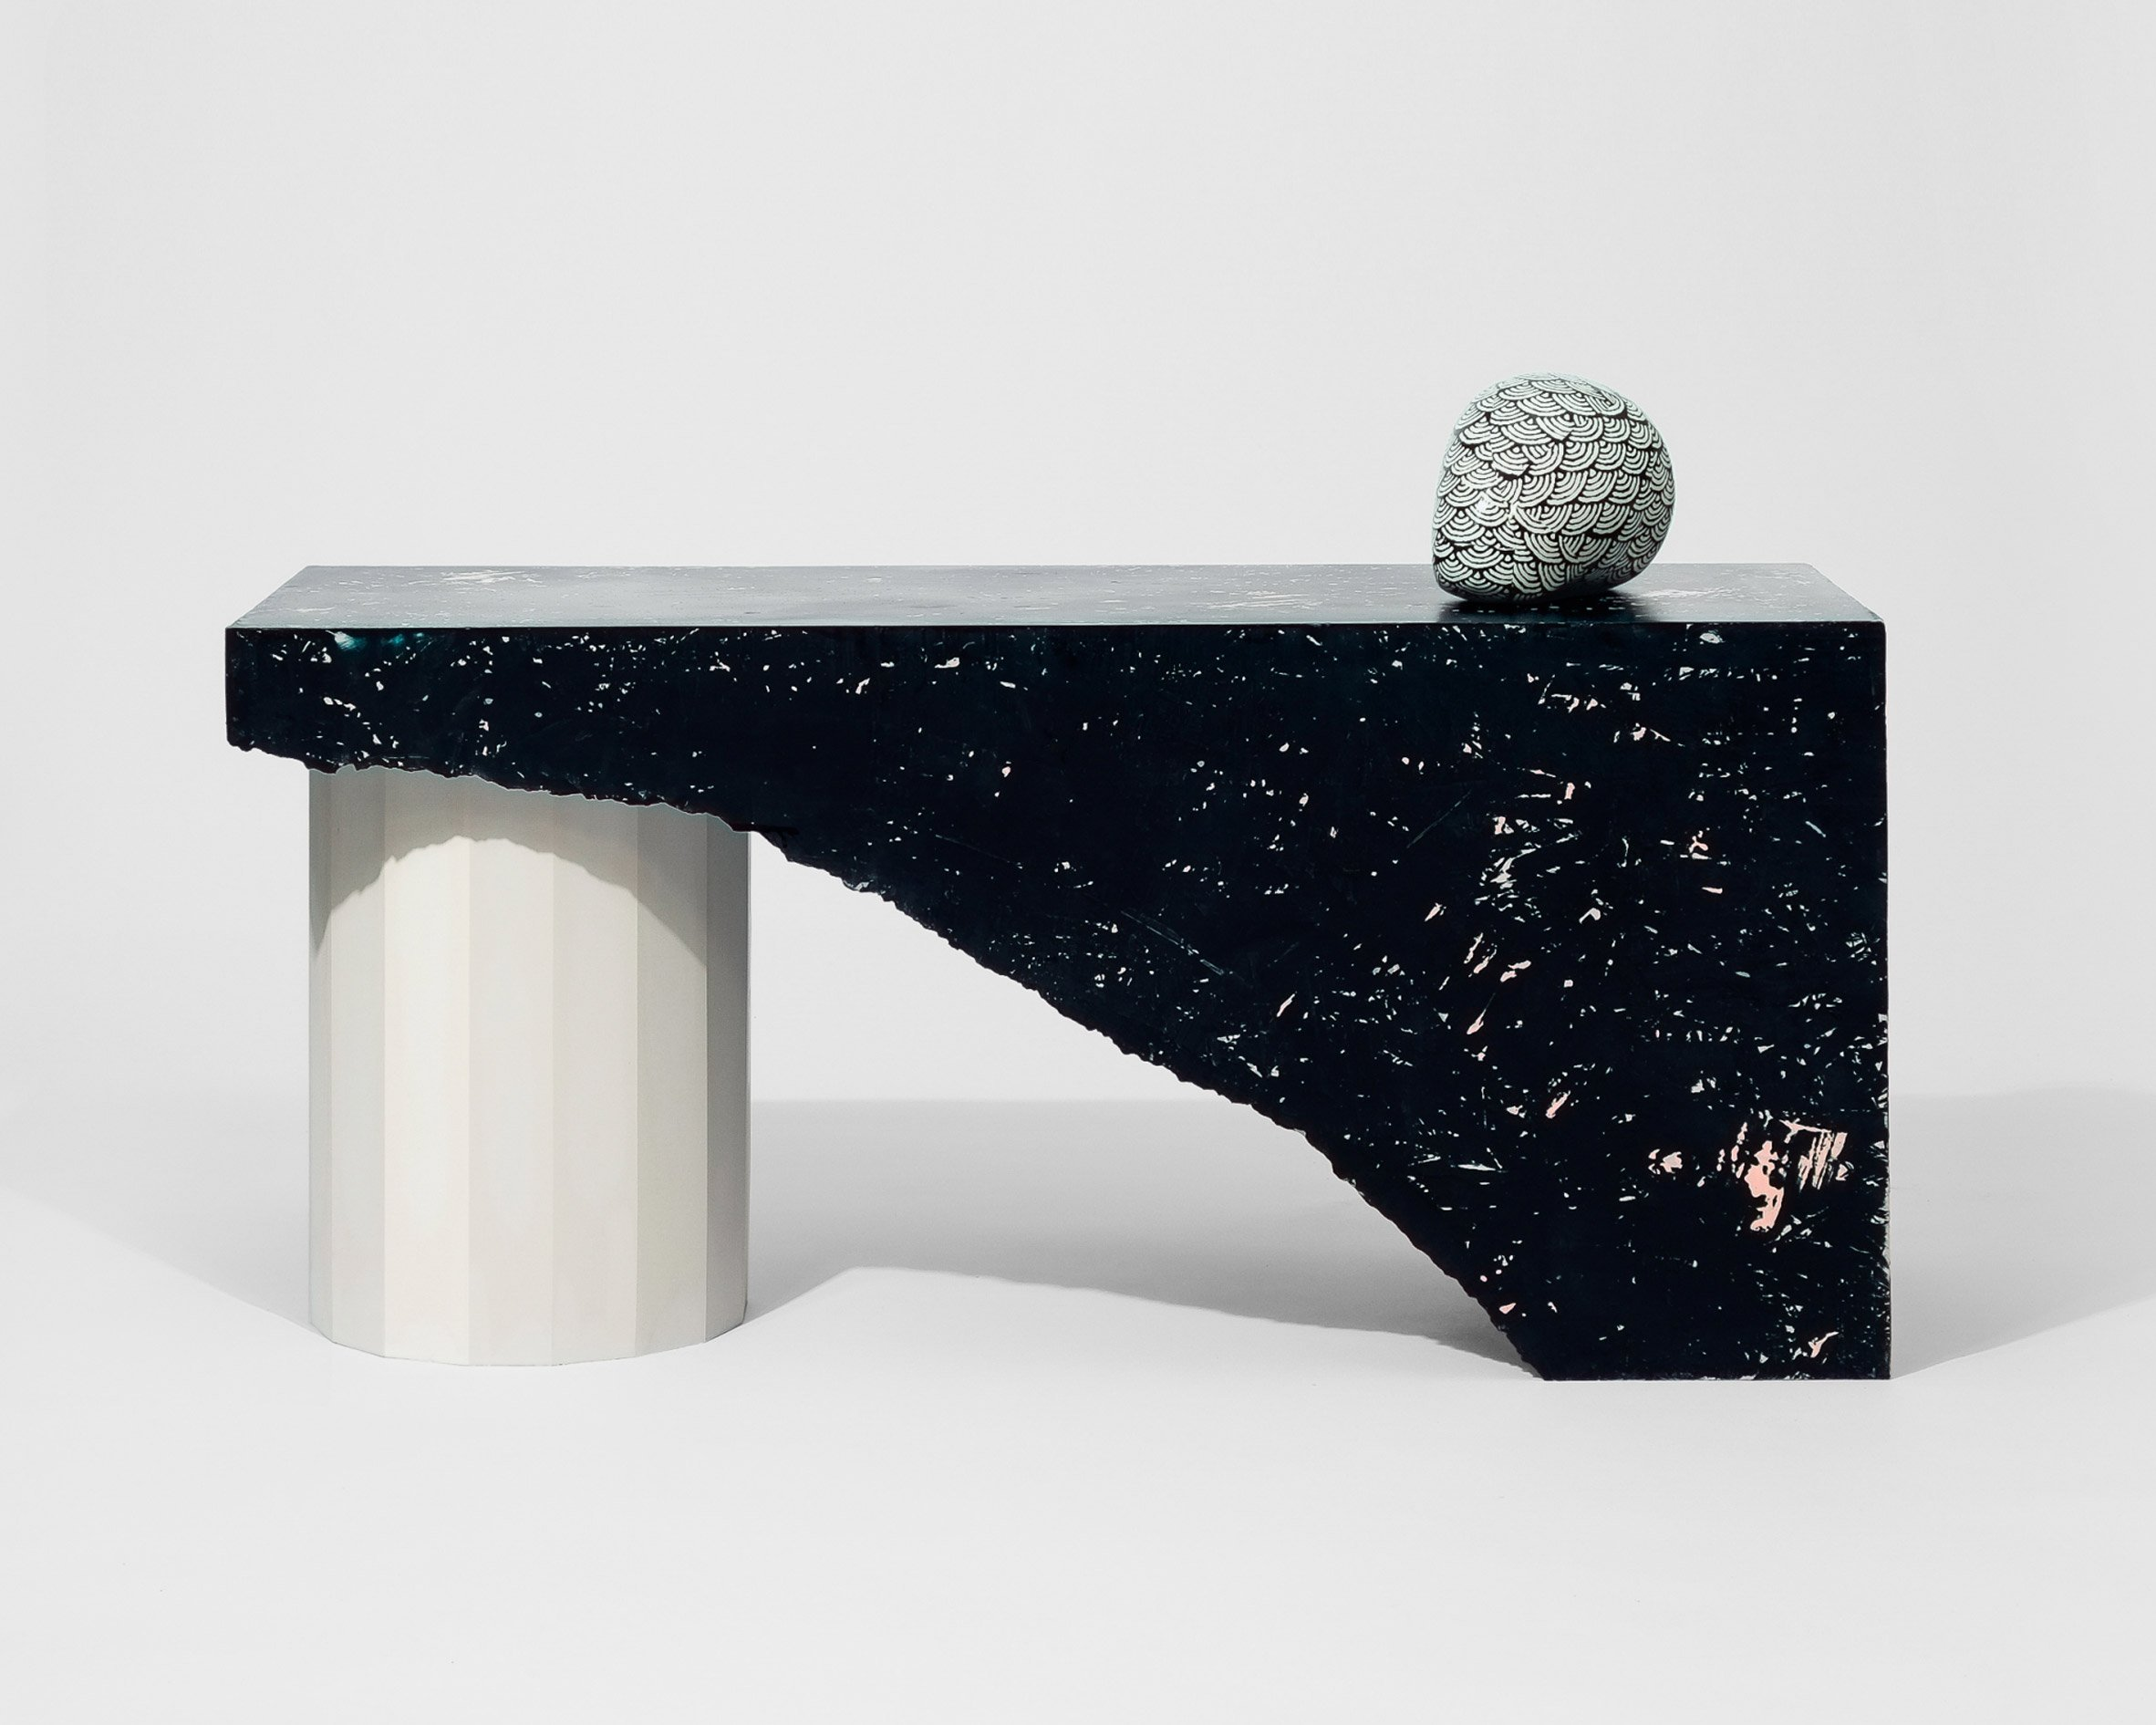 london design fair to showcase projects from europe asia and america the netherlands will also be making its london design fair debut with its dutch stuff presentation here five curators will each take charge of their own